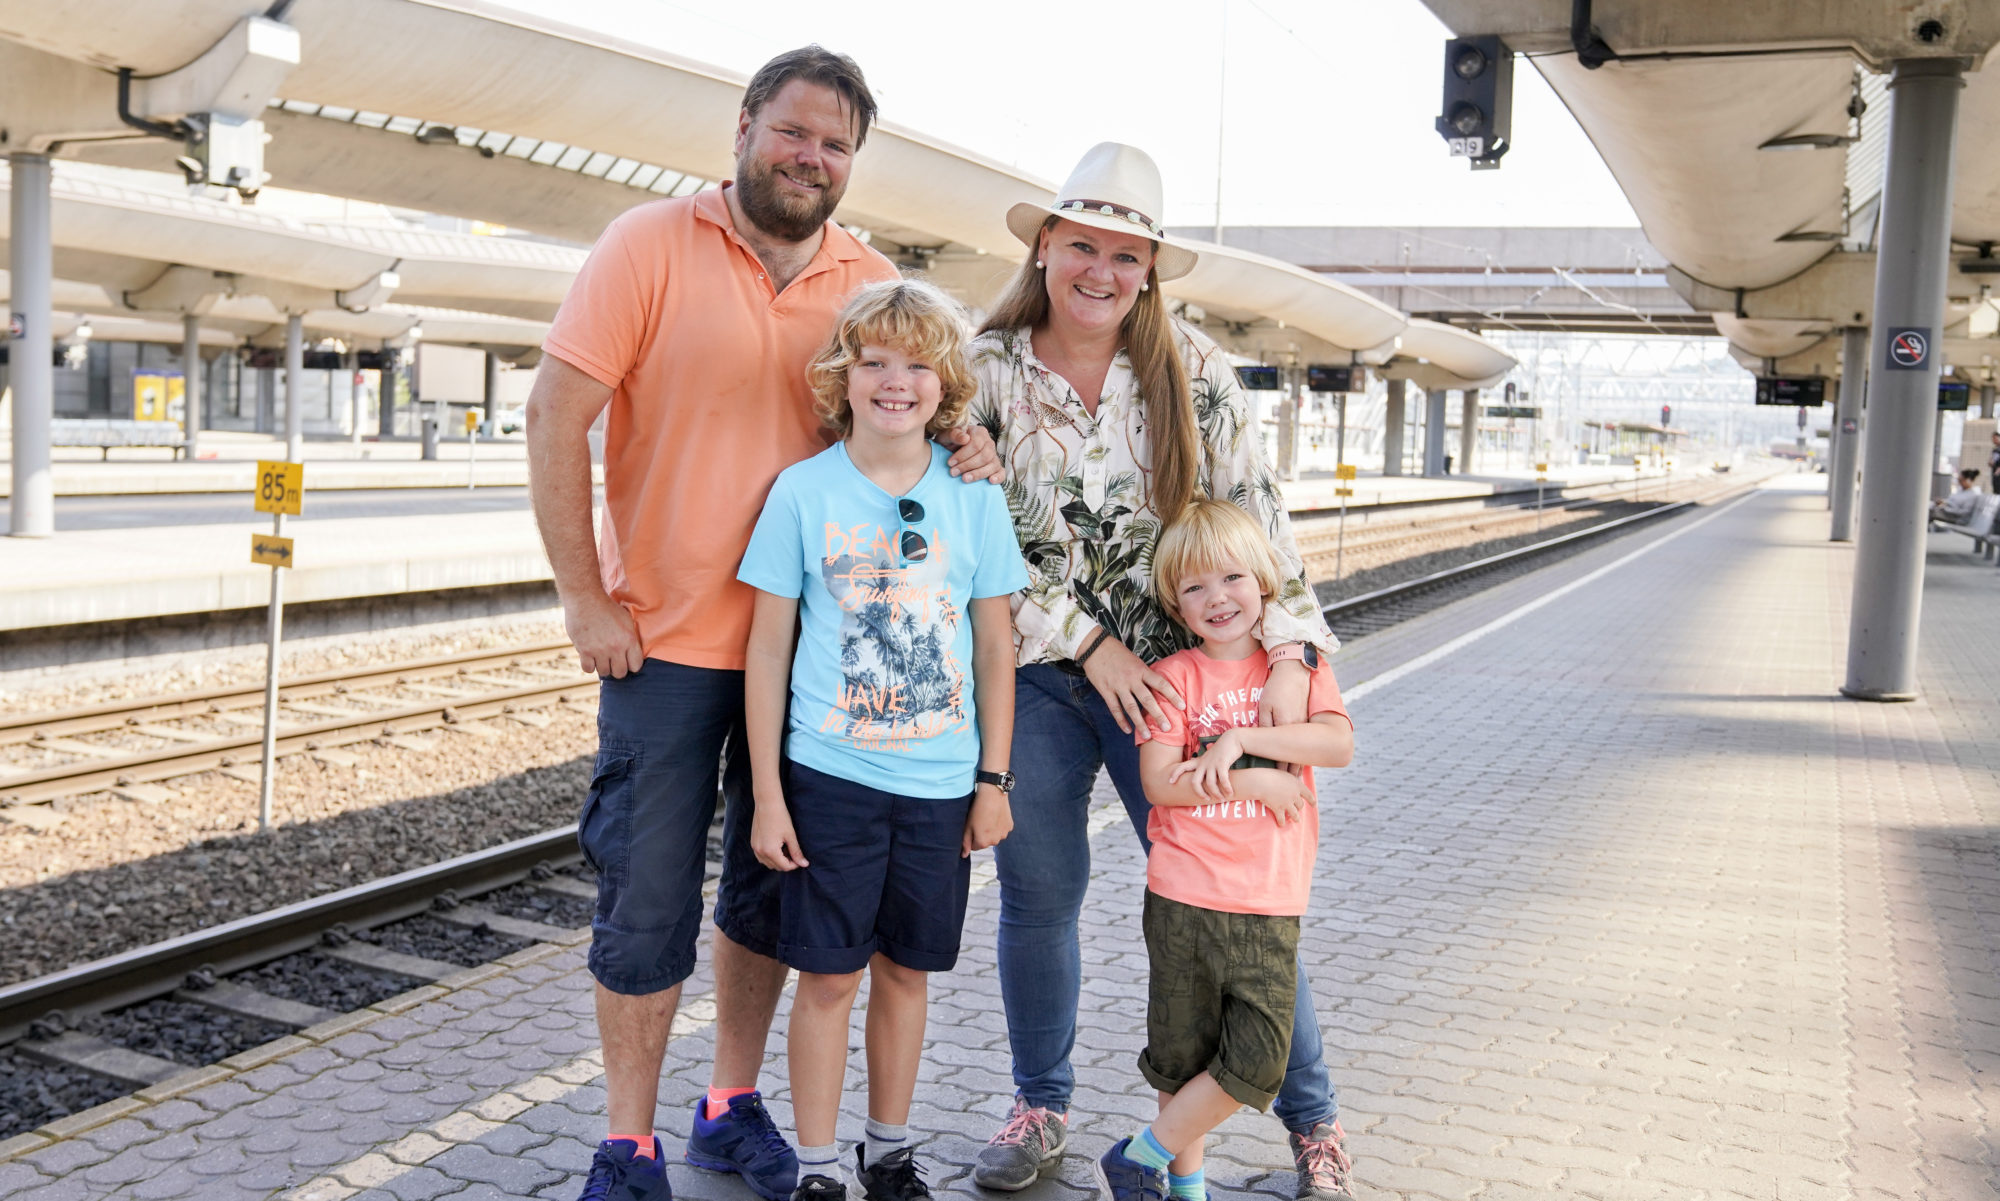 The Norwegian Travel Family